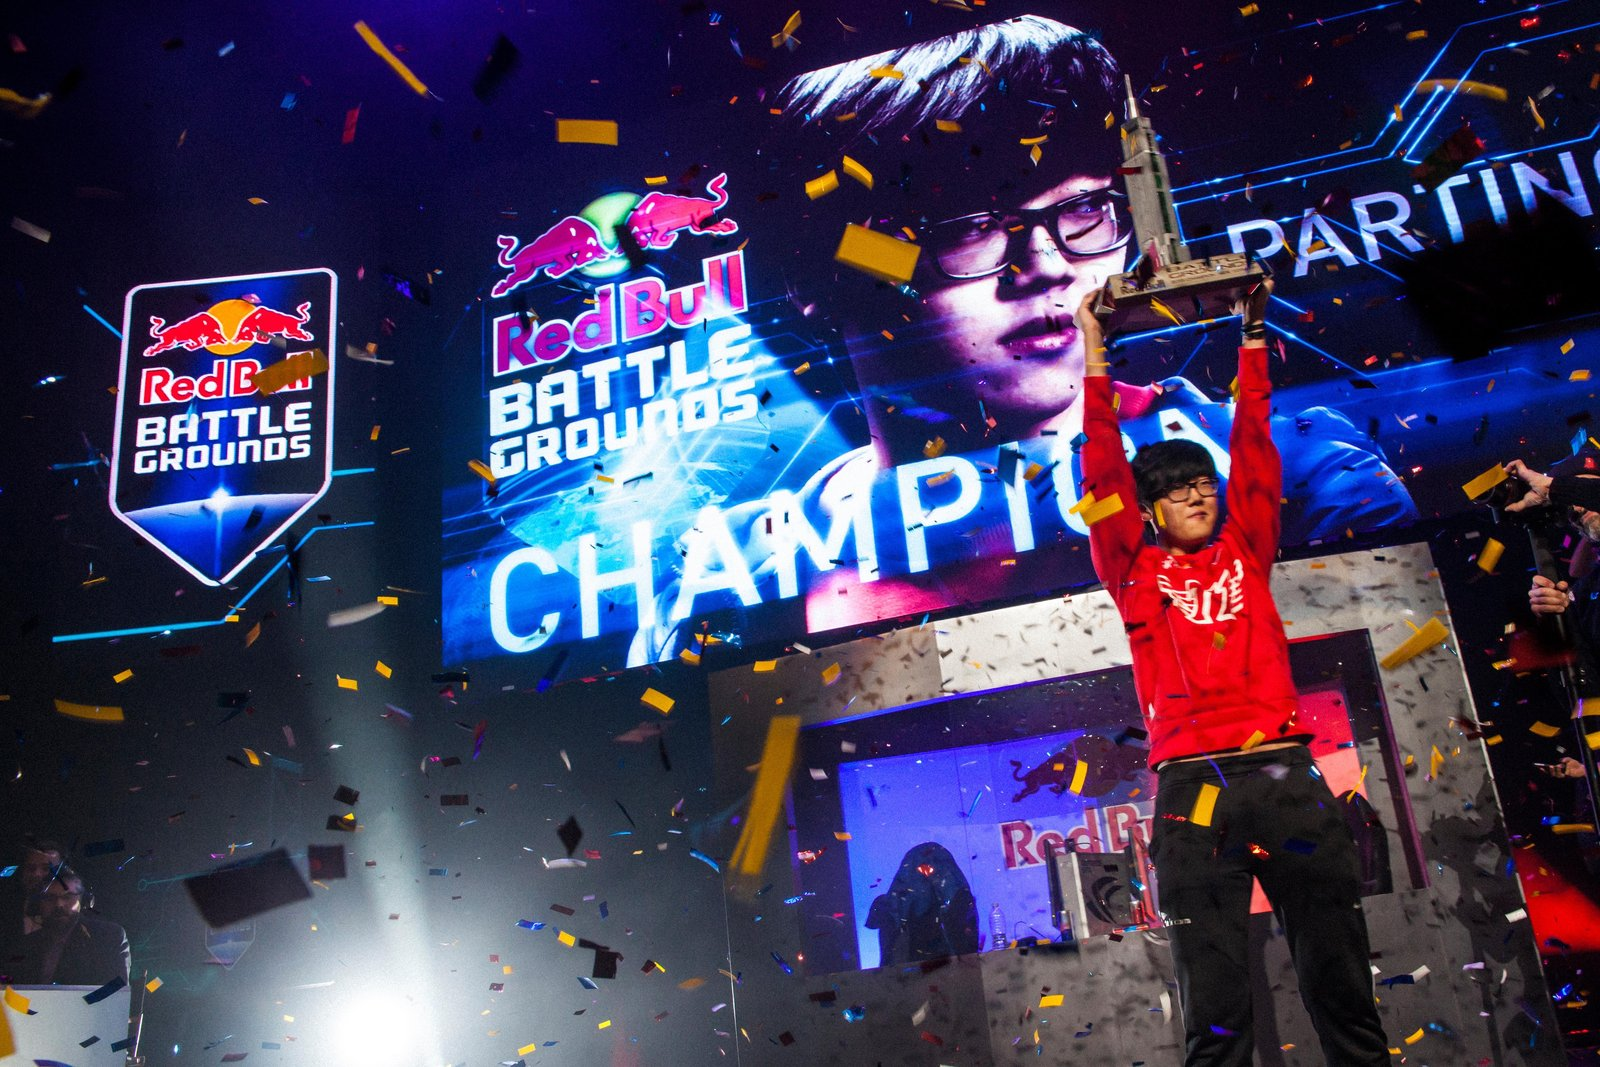 PartinG celebrates his victory over sOs in the final of Red Bull Battle Grounds, at the Hammerstein Ballroom in New York City, NY, USA on 24 November, 2013.